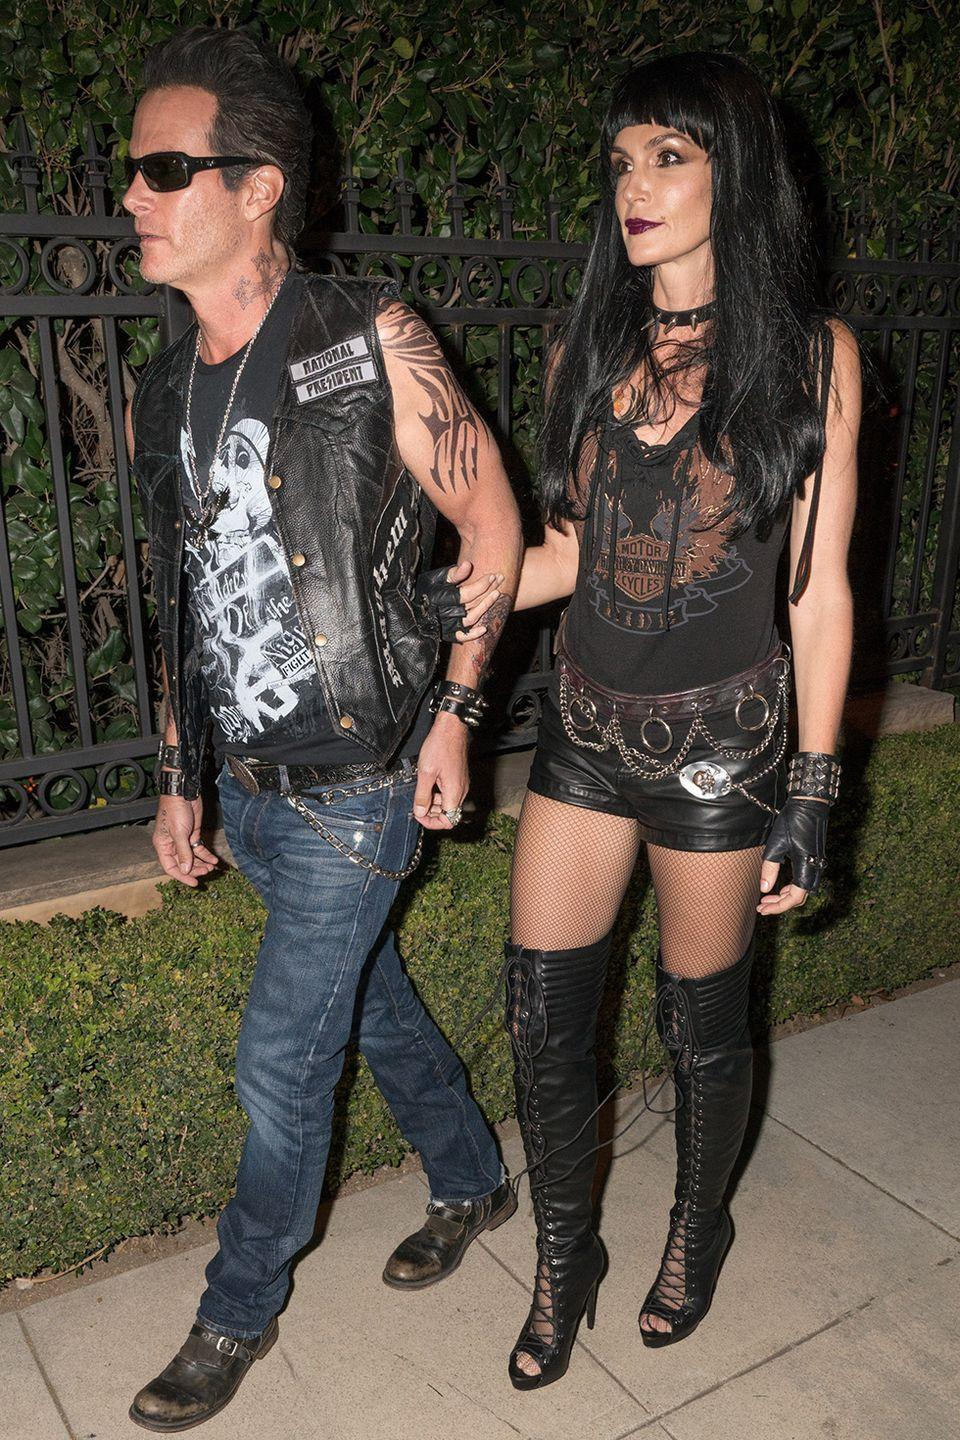 """<p>For their 2015 couples costume, <a href=""""https://www.womenshealthmag.com/beauty/g33844057/cindy-crawford-makeup-free/"""" rel=""""nofollow noopener"""" target=""""_blank"""" data-ylk=""""slk:Cindy"""" class=""""link rapid-noclick-resp"""">Cindy</a> and Rande dressed up as Hell's Angels in Beverly Hills, California. (Anyone else getting major <em>Sons of Anarchy</em> nostalgia?)</p>"""